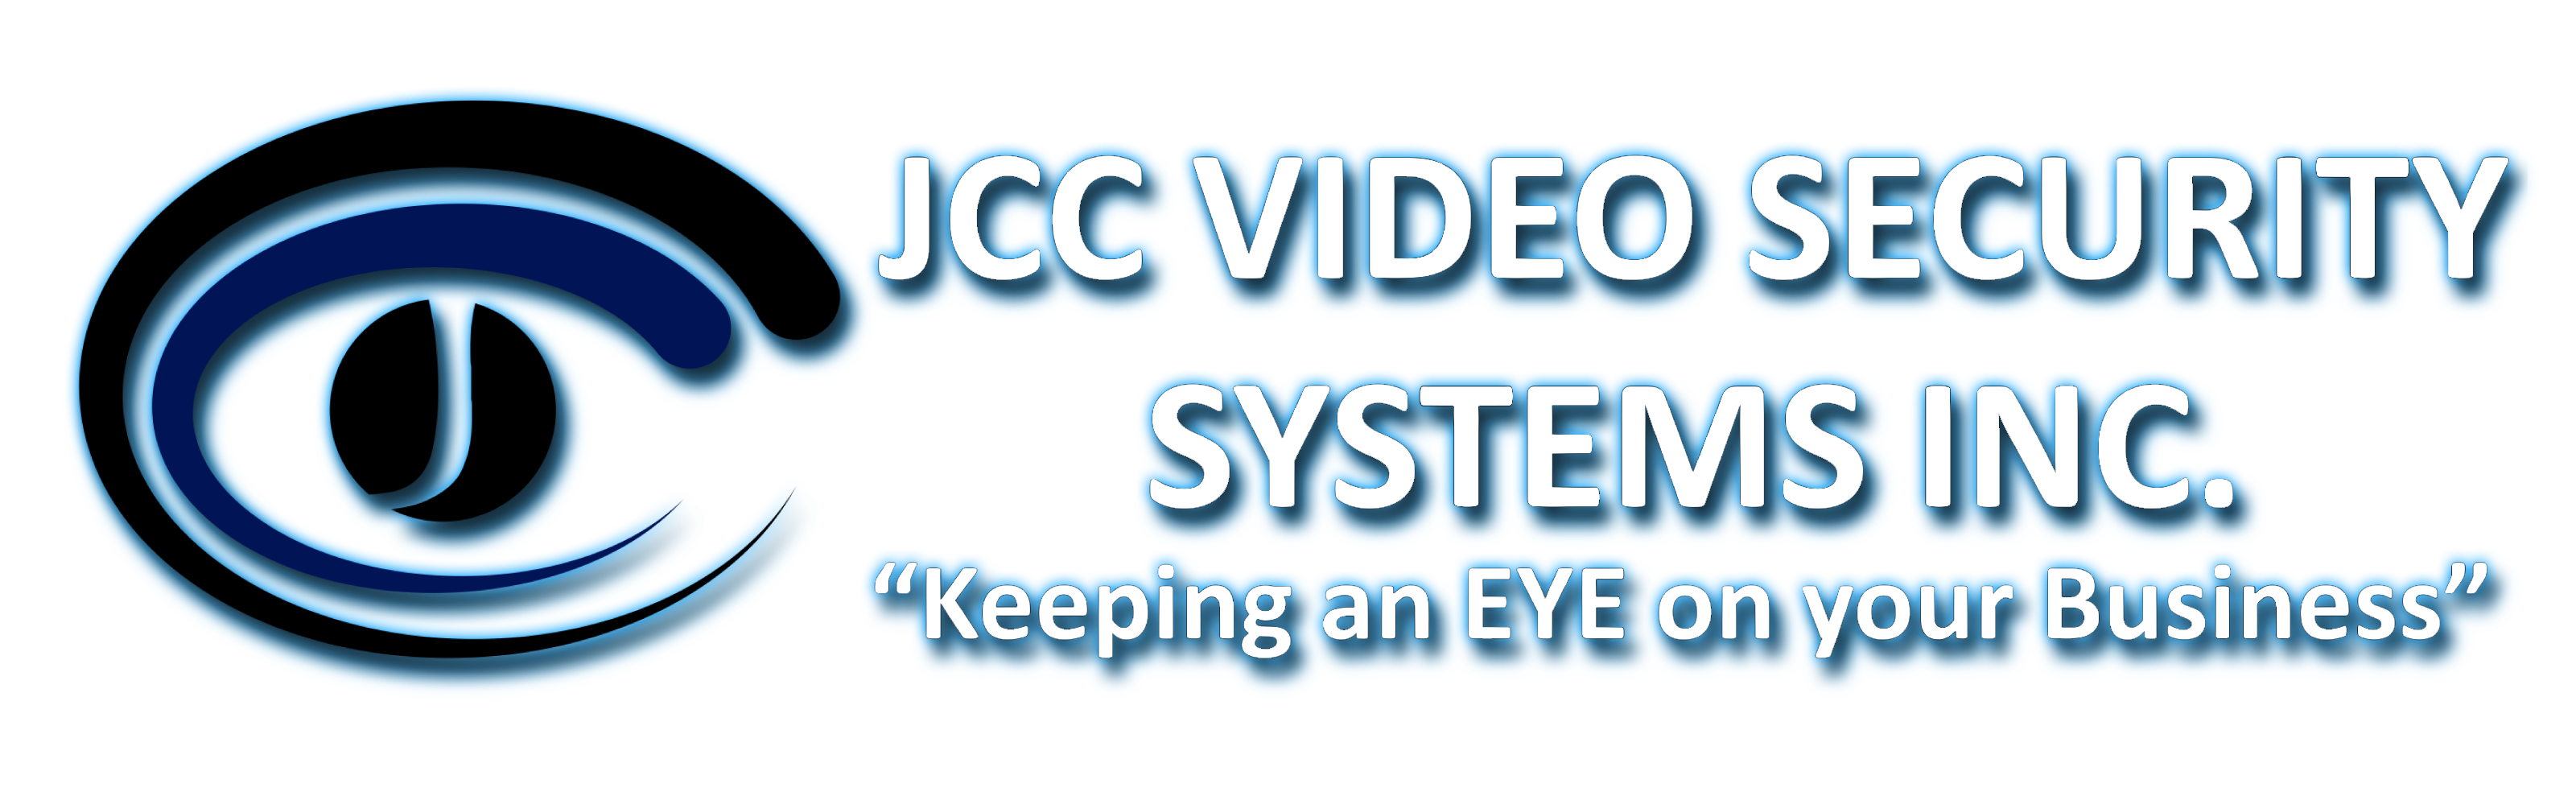 JCC Video Security Systems, LLC